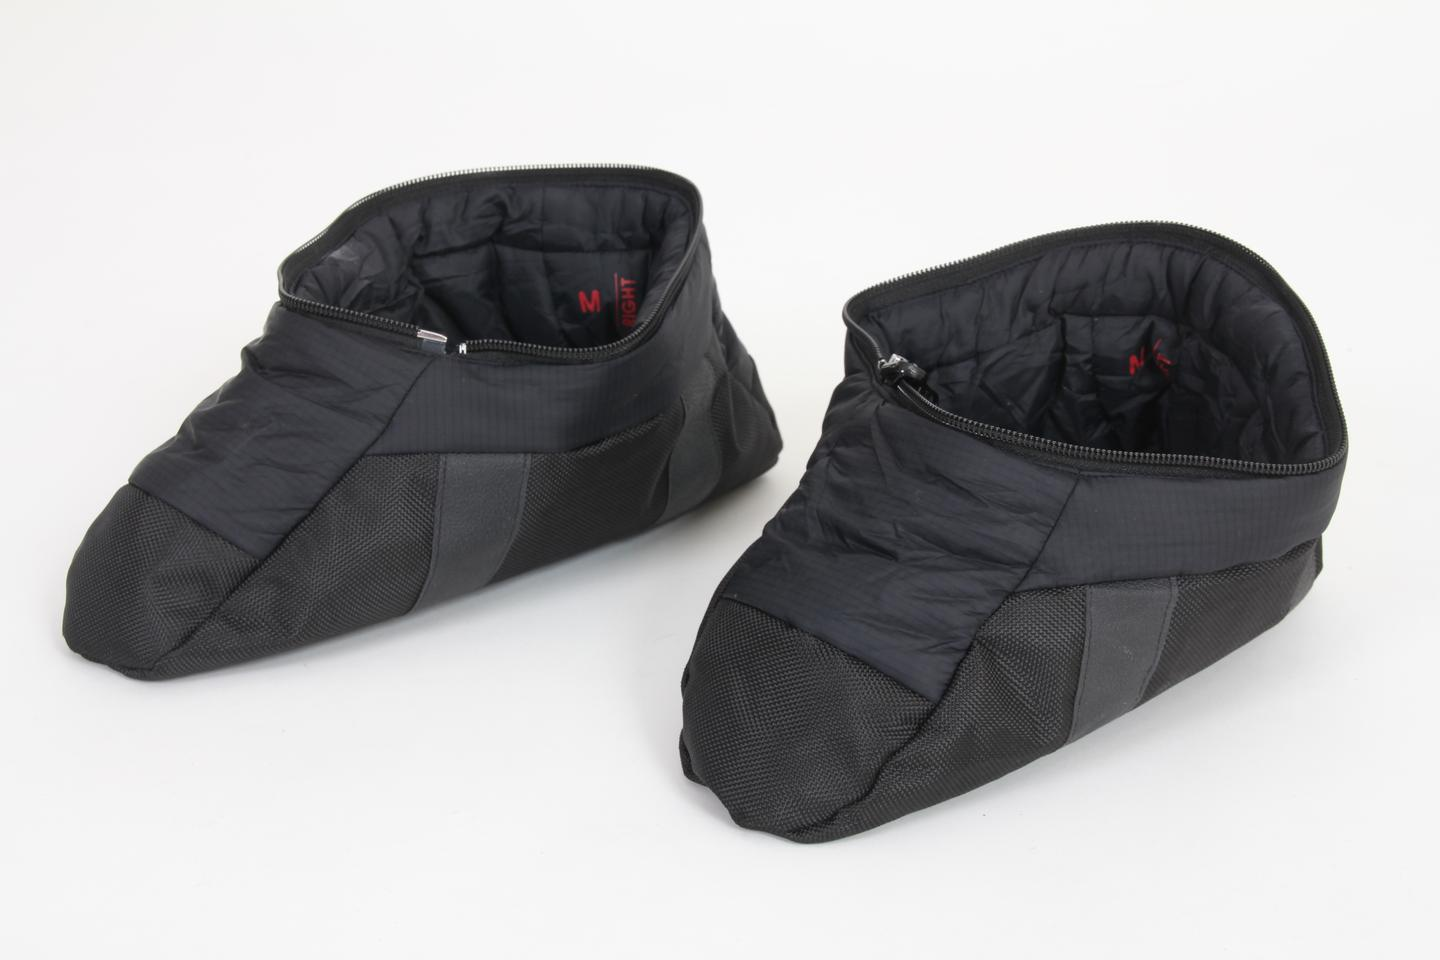 The removable booties zip together to form a pillow